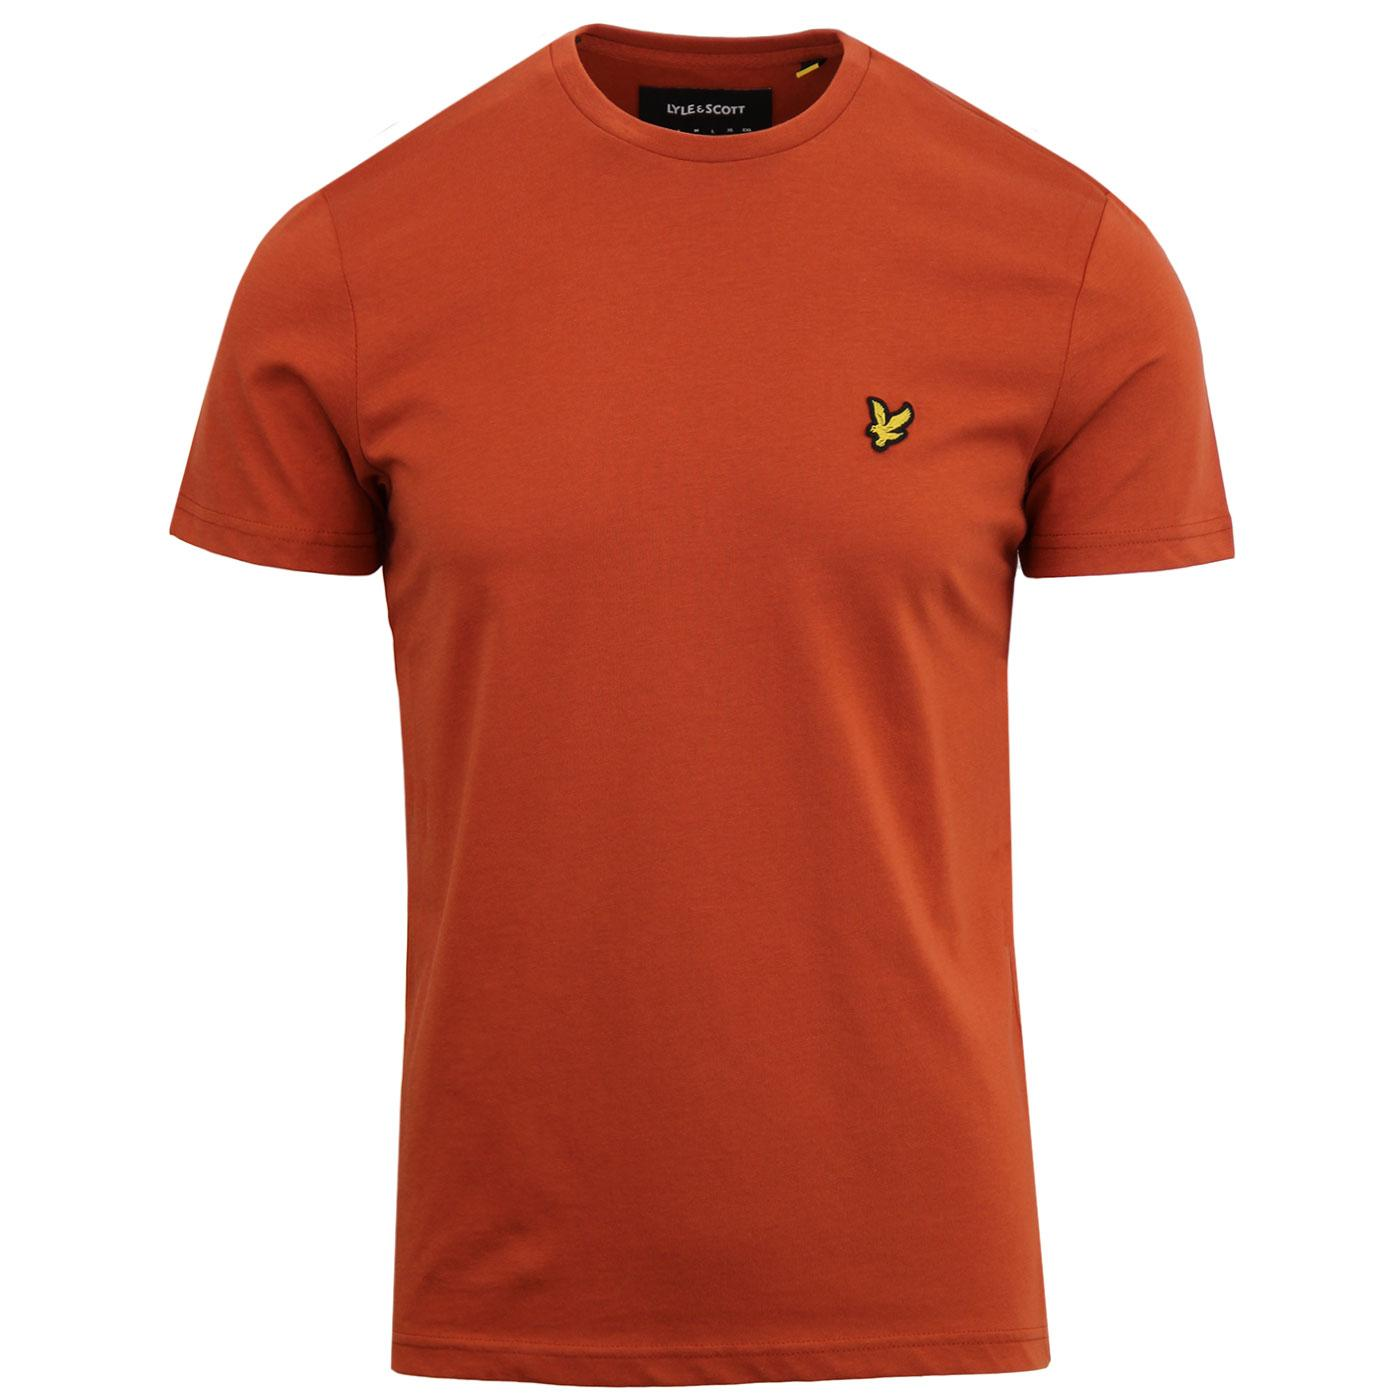 LYLE & SCOTT Men's Crew Neck T-Shirt (Brown Spice)